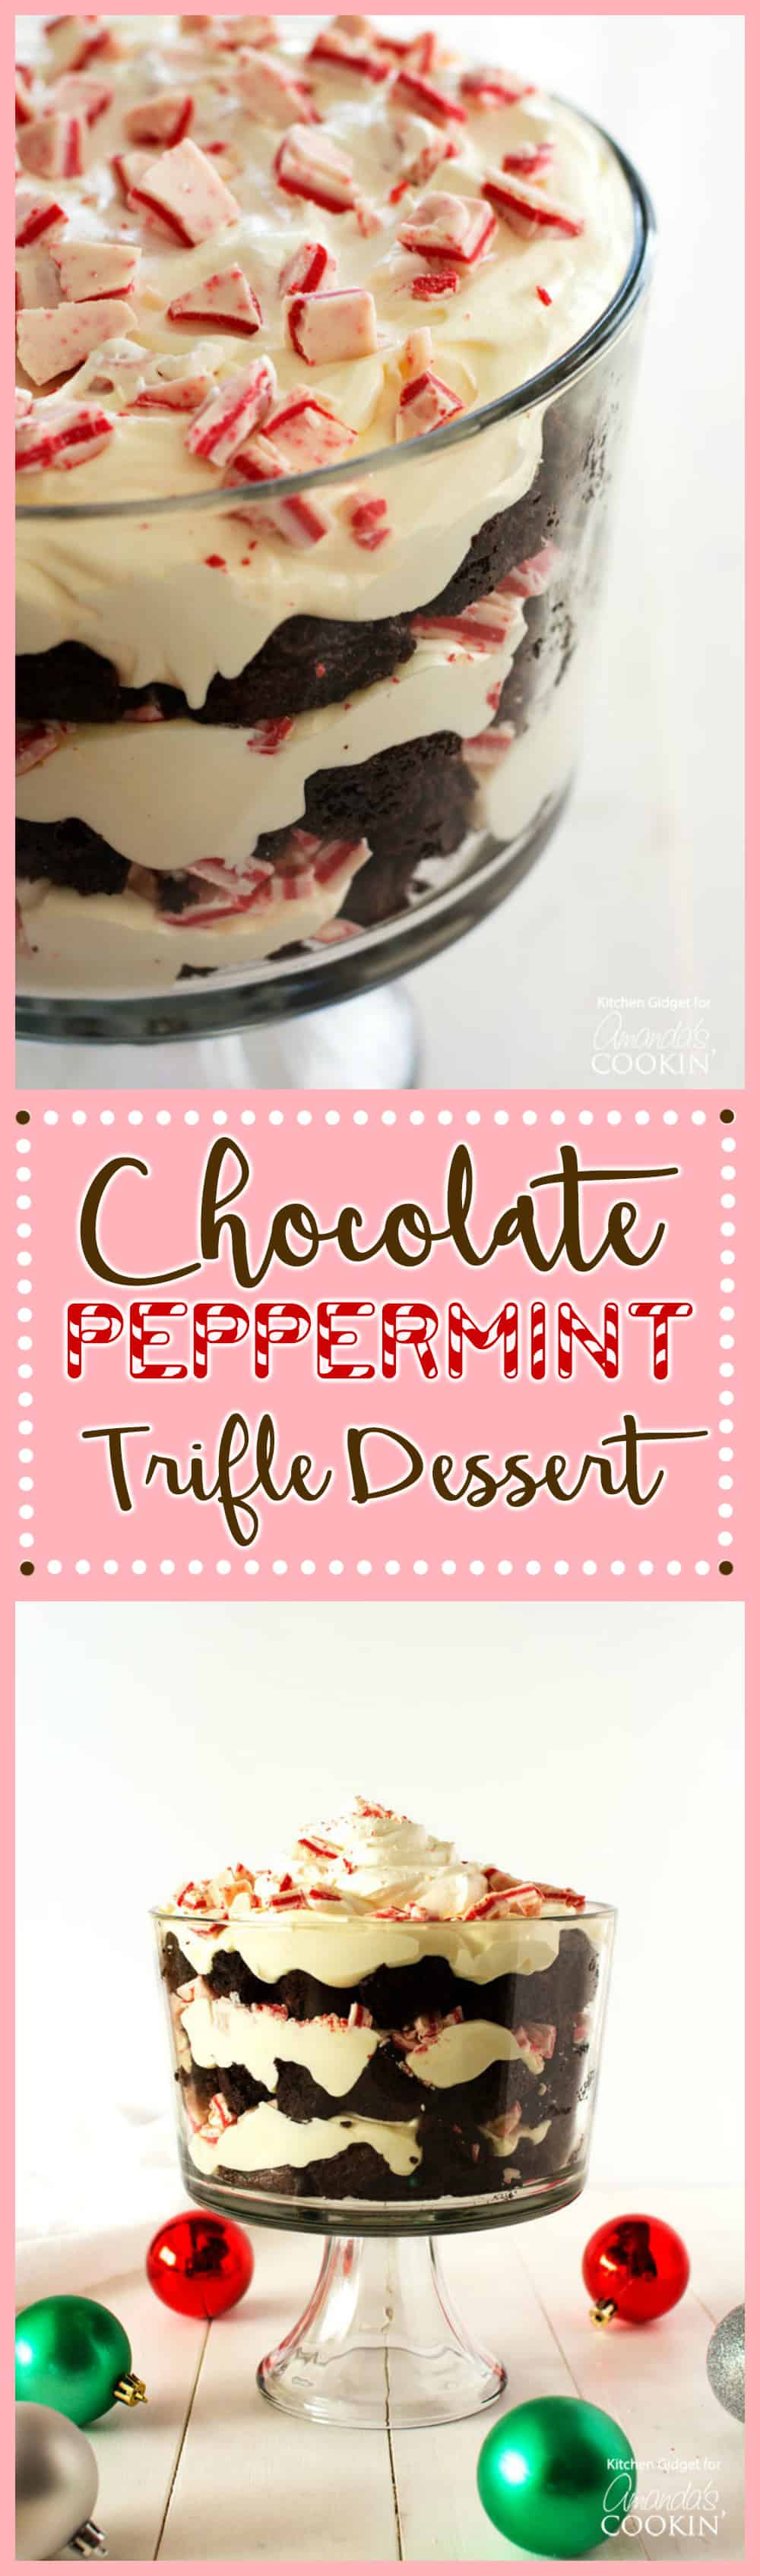 Photos of a chocolate peppermint trifle.